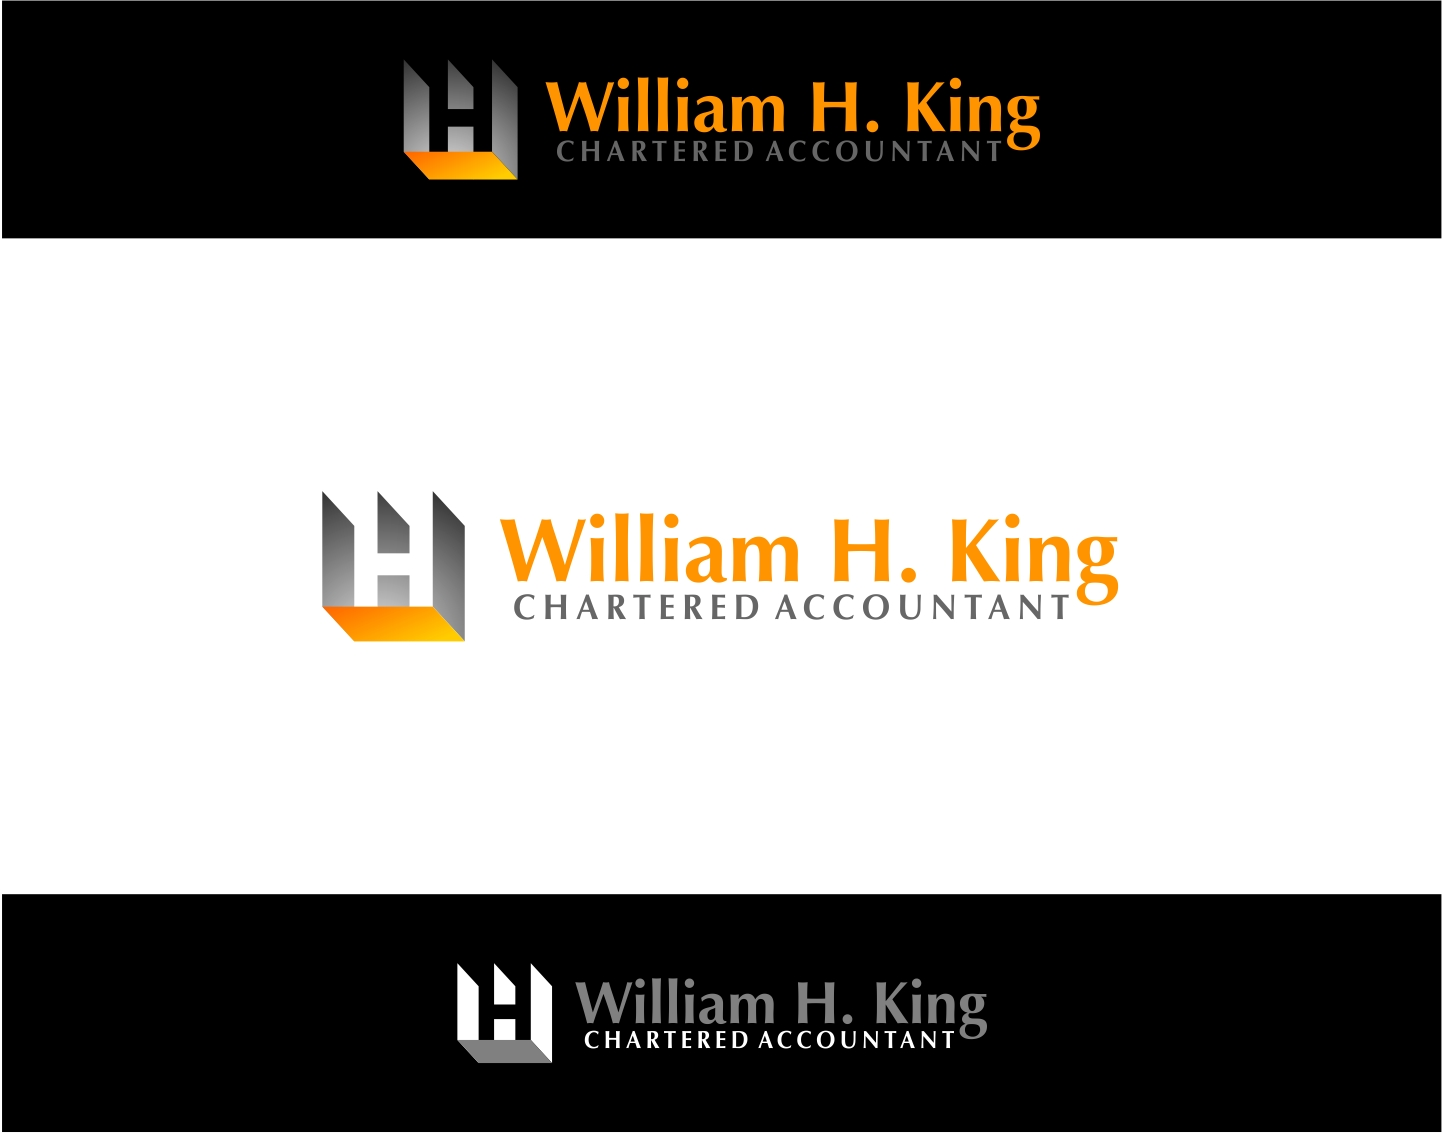 Logo Design by haidu - Entry No. 14 in the Logo Design Contest New Logo Design for William H. King, Chartered Accountant.